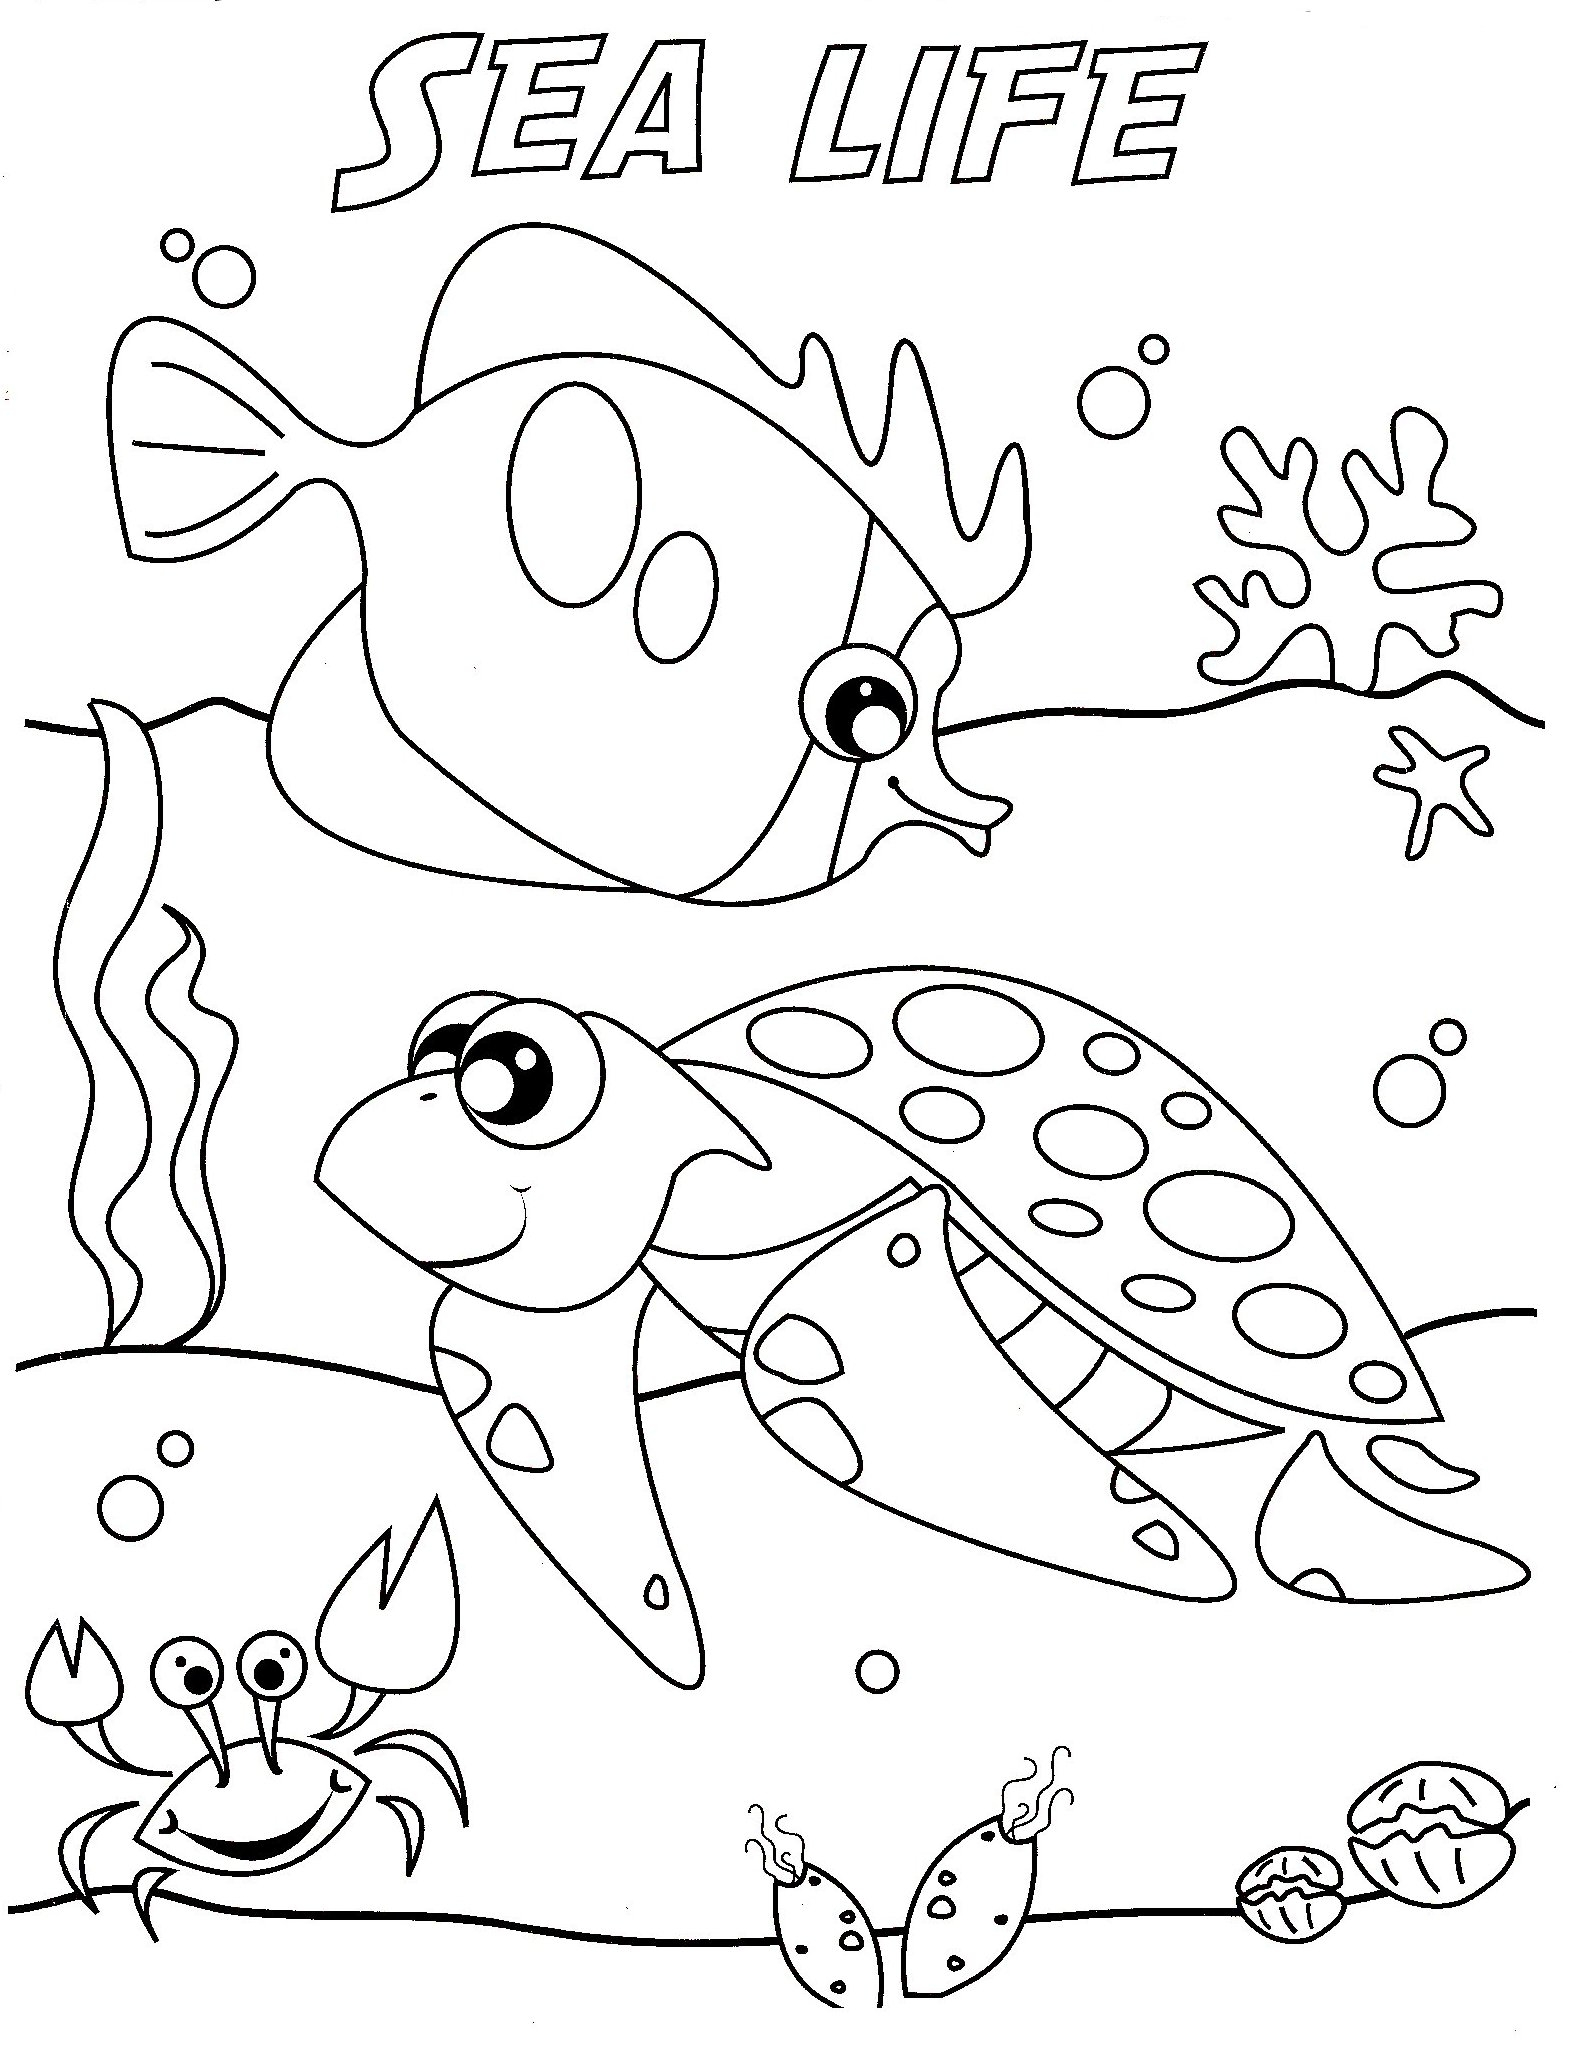 Cute Things Coloring Pages At Getcolorings